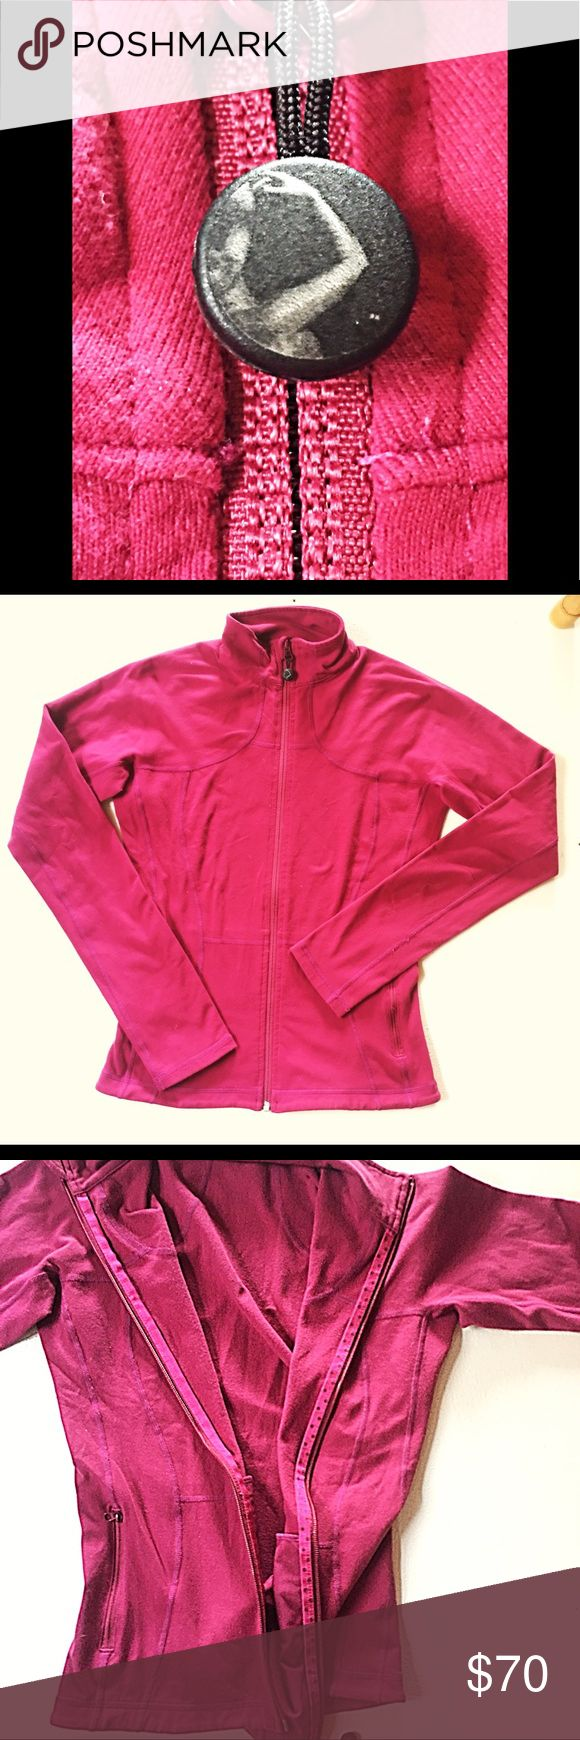 ‼️NAME ME‼️lululemon zip up ✌🏼does anyone recognize this kind of style on a zipper? I'm under the impression it's a first edition define jacket. Raspberry color, size 4. Slight piling. No holes or tears! I bought this off a fellow posher, tad small on me, just have to make sure one of my crazy lululemon girls recognize this before I sell😍💯 thanks lovelys lululemon athletica Sweaters